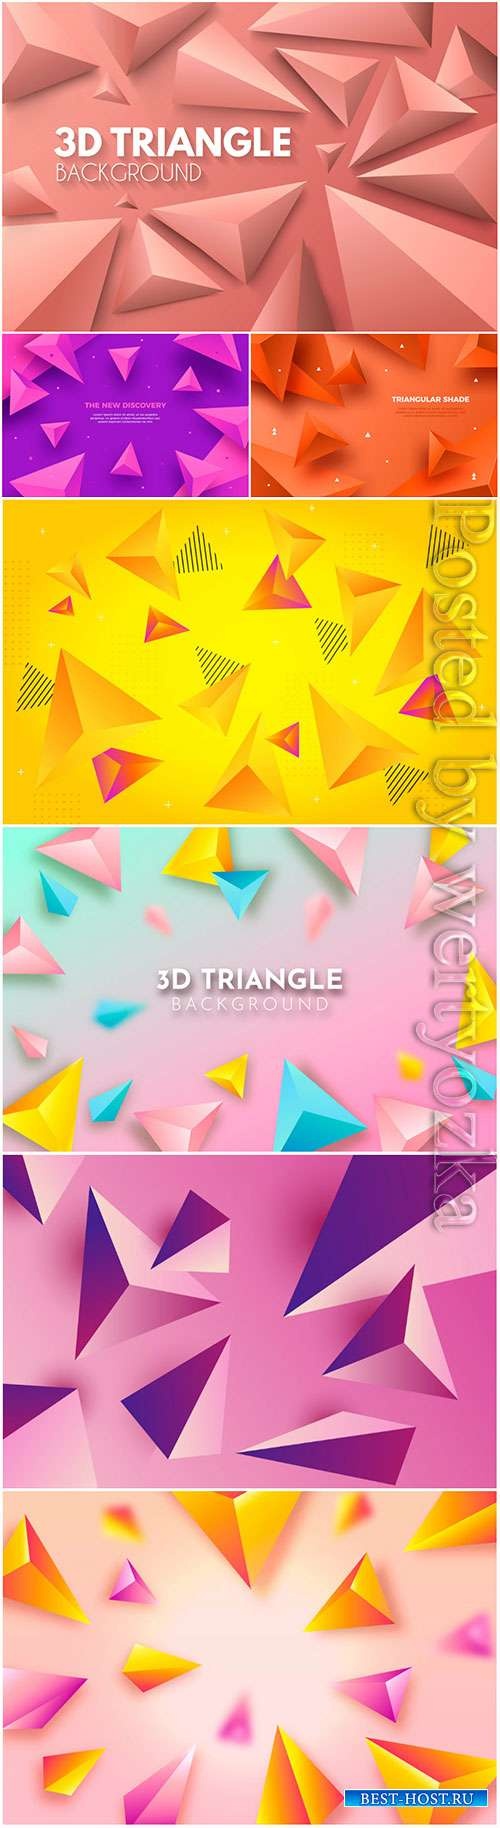 3d background with colorful abstract vector elements